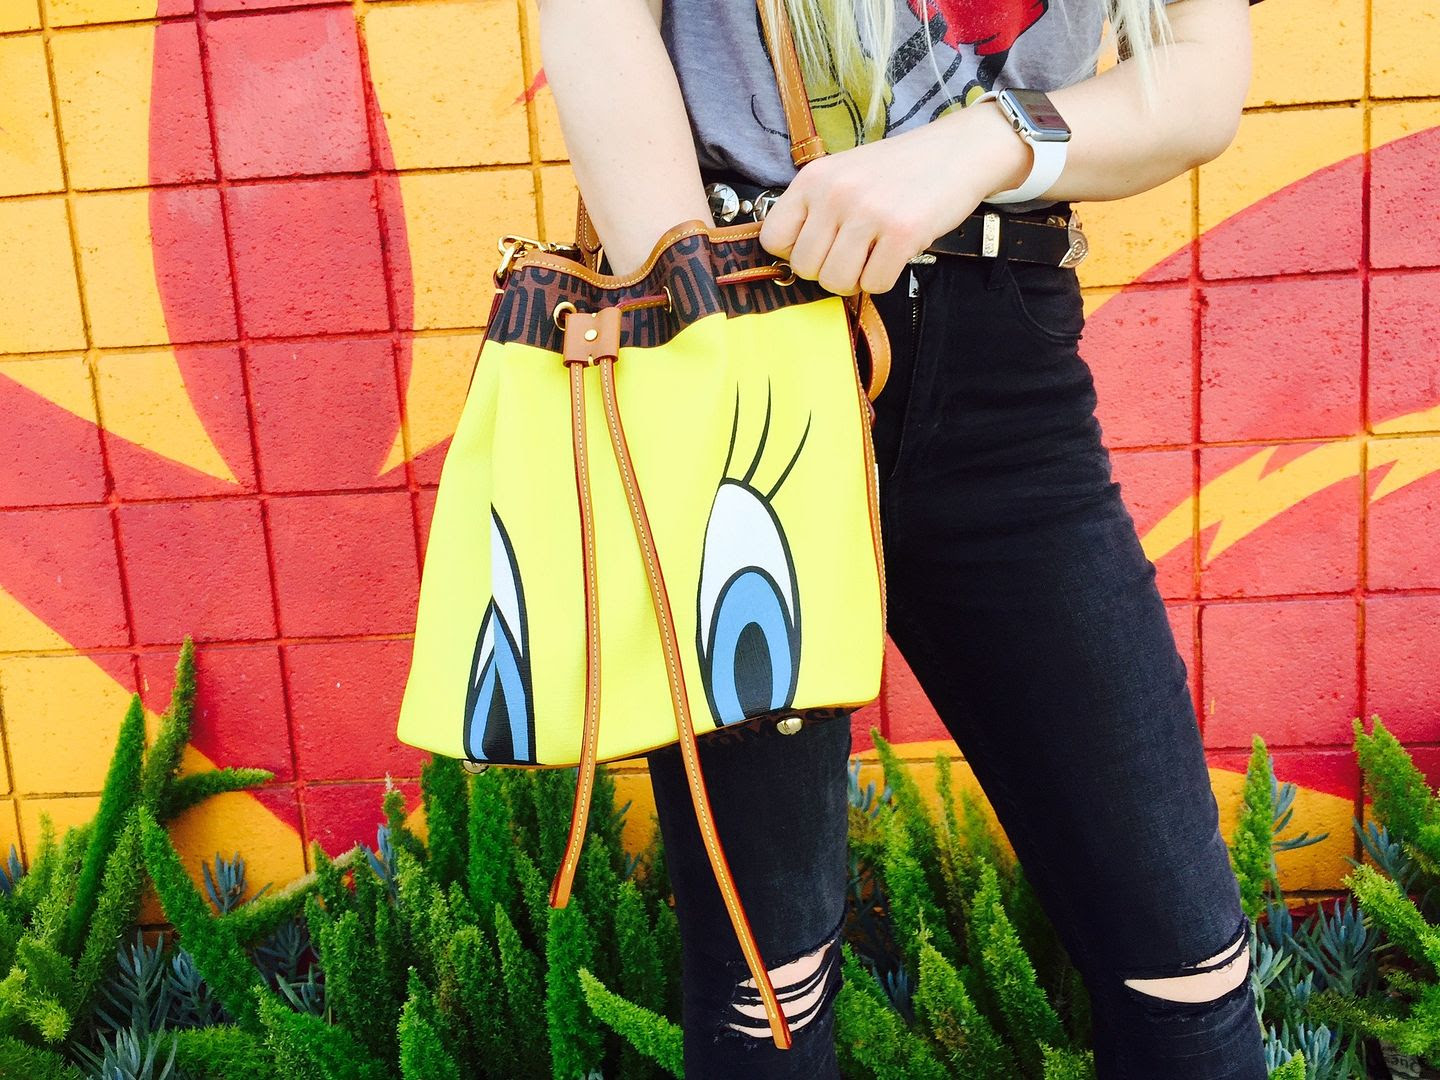 photo moschino-tweetybird-bucketbag-beckermanblog_zpsxbdjll0t.jpg